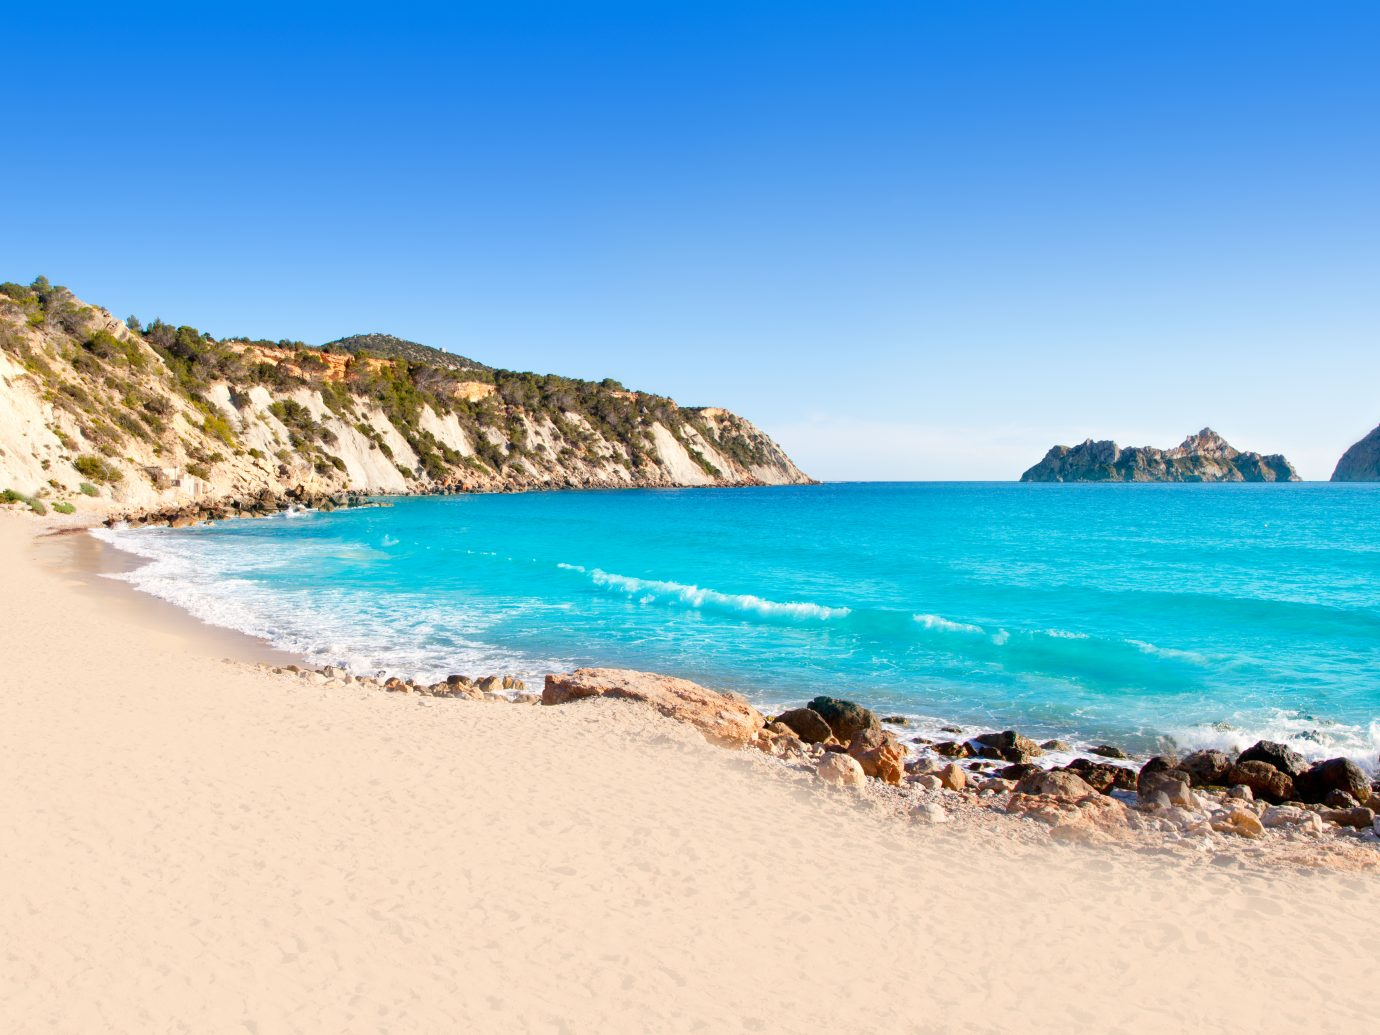 Ibiza view from Cala d Hort